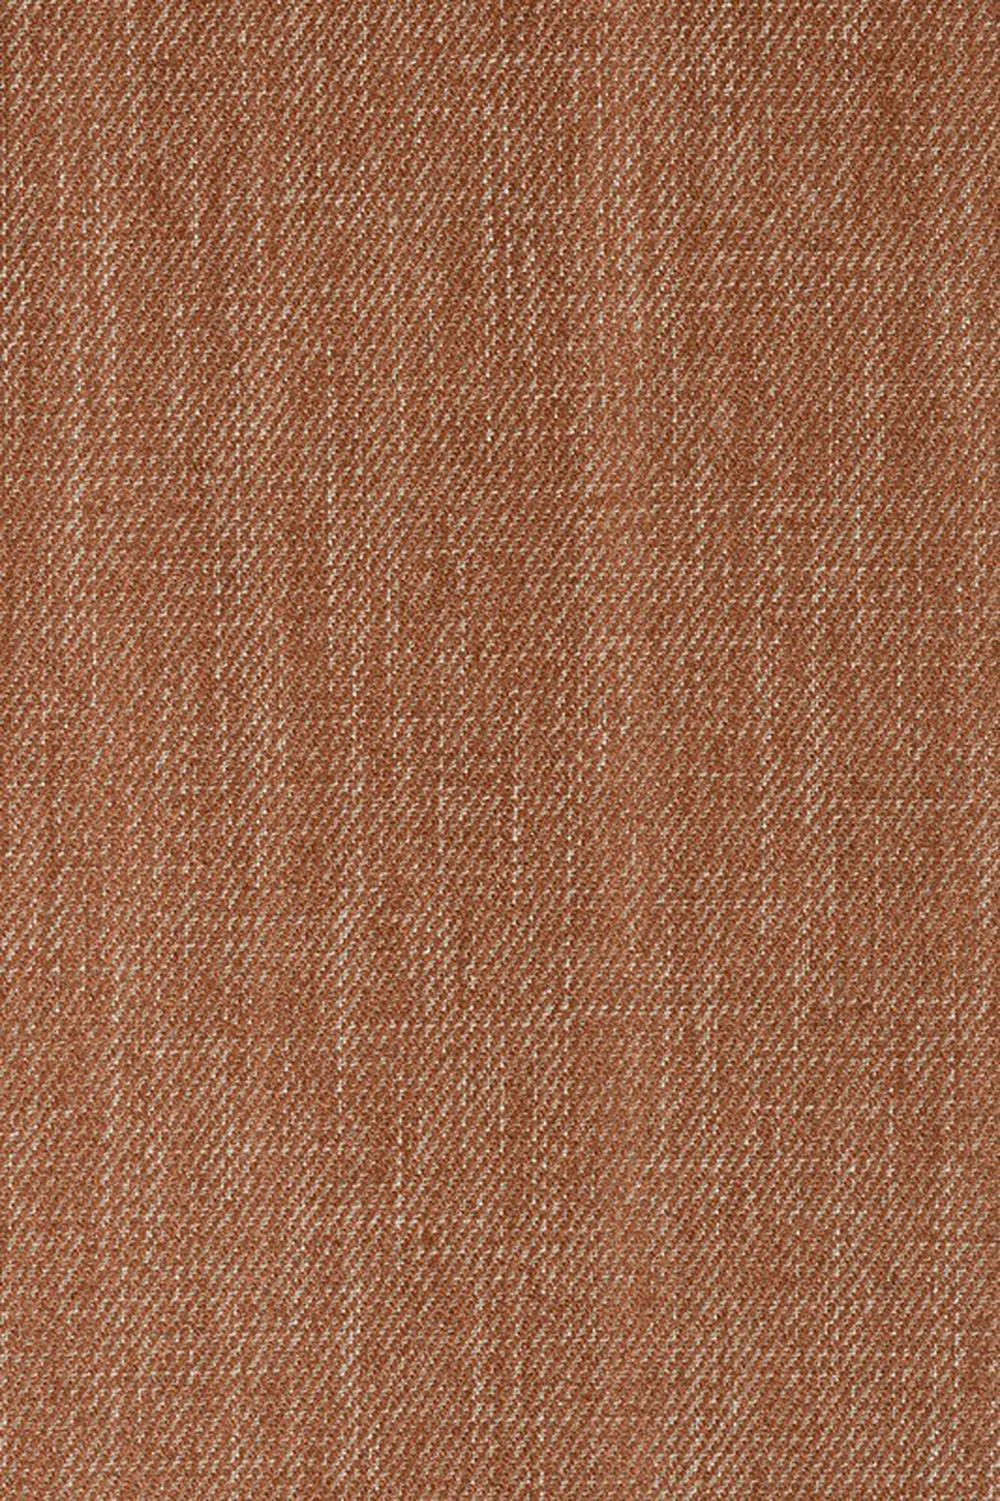 Photo of the fabric Brooklyn Rust swatch by James Dunlop. Use for Upholstery Heavy Duty, Accessory. Style of Plain, Texture